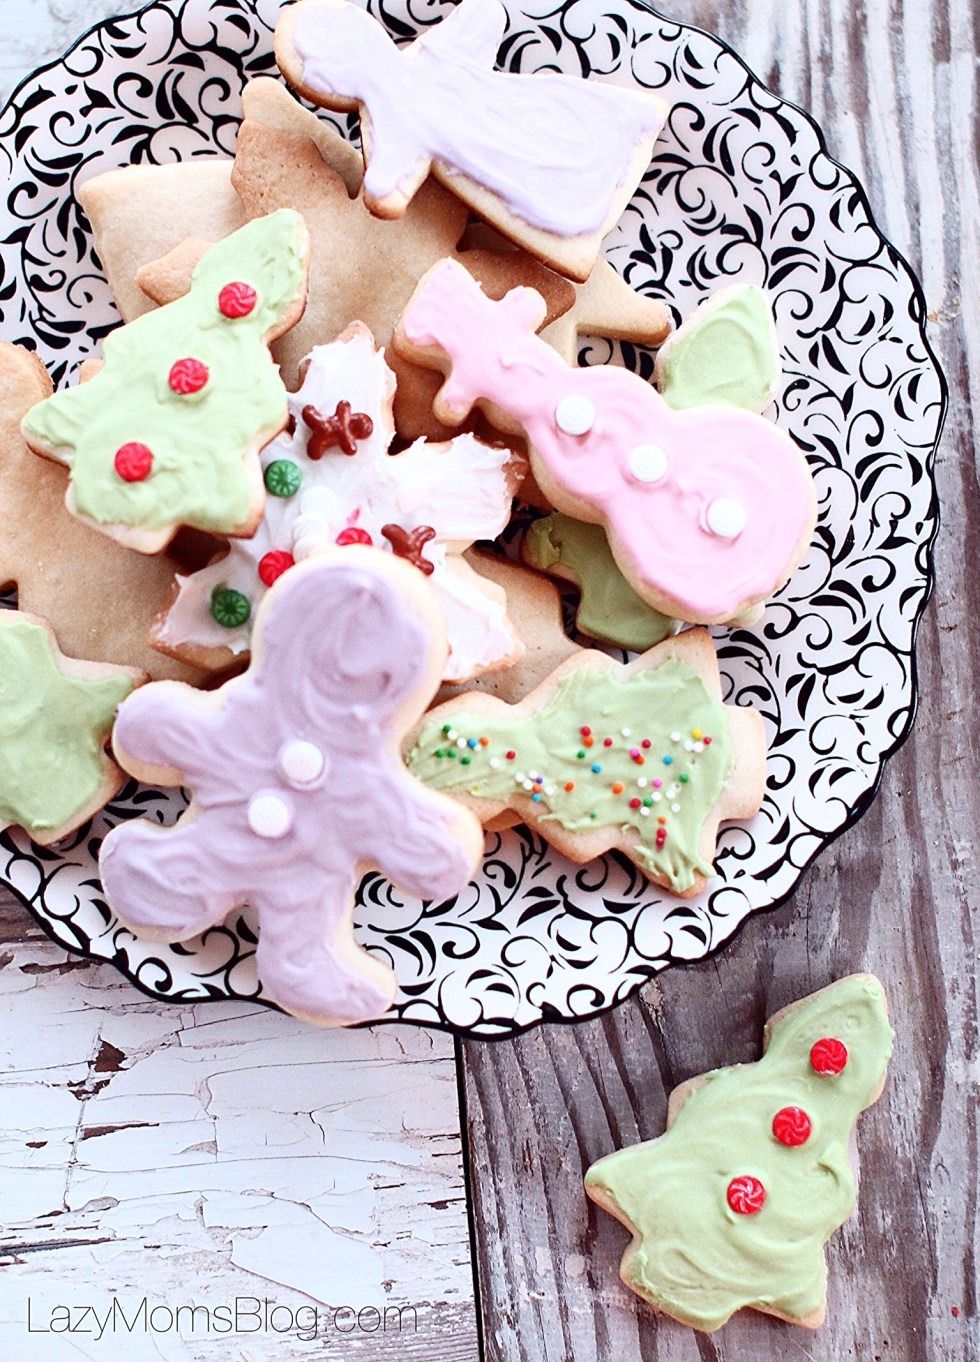 The beast sugar cookie recipe out there! Melting in your mouth, buttery, simply perfect!